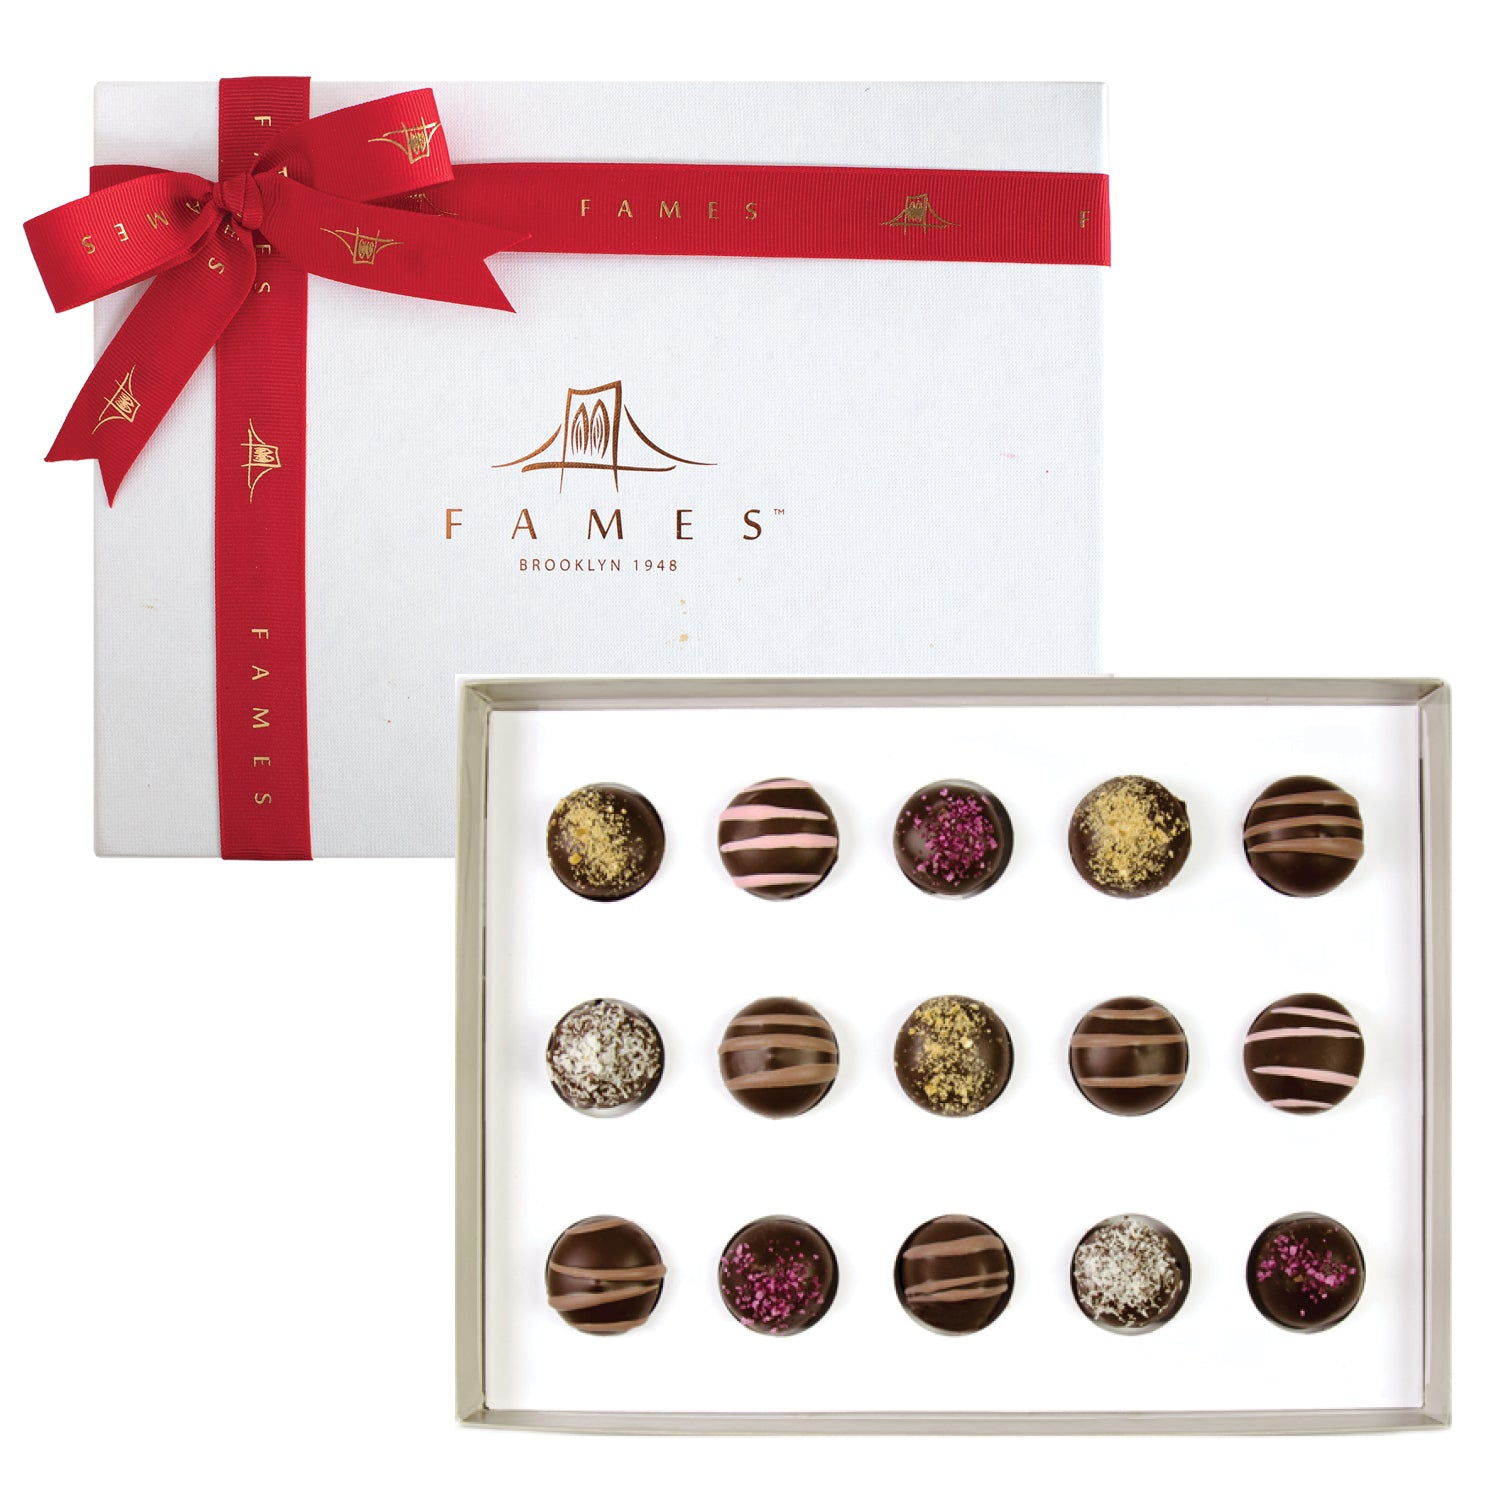 fFames Assortment Chocolate Gift Box